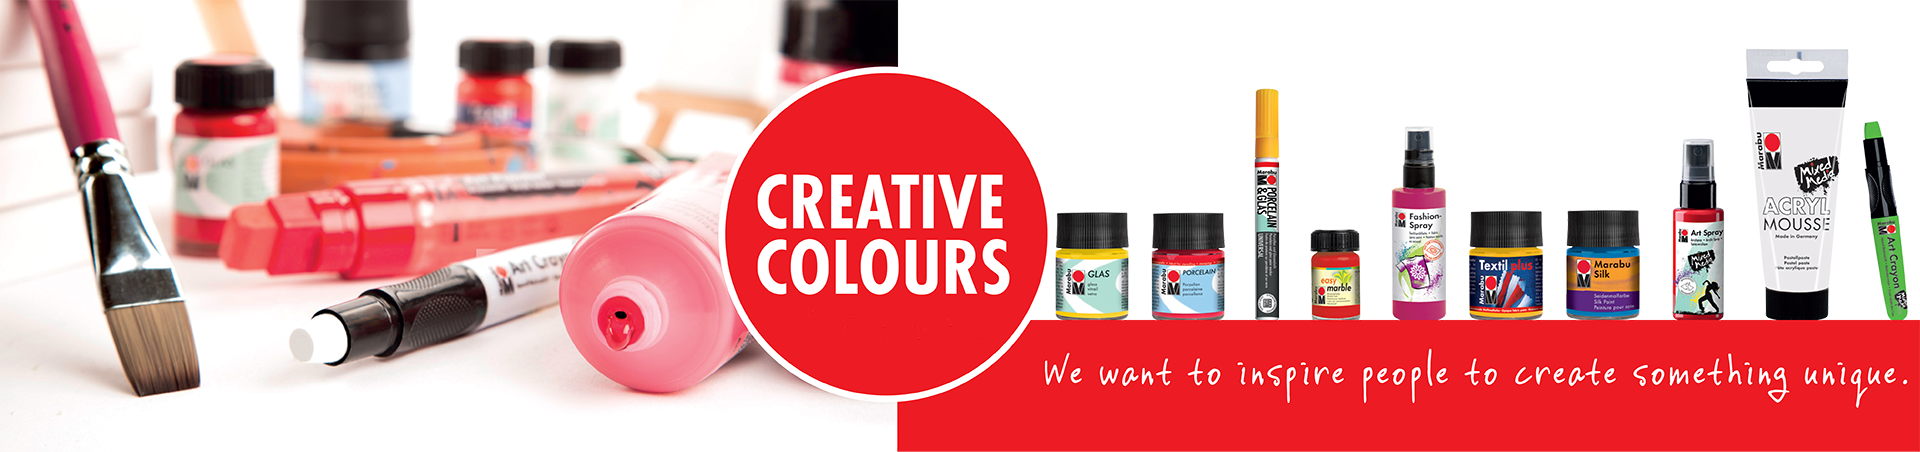 Marabu Creative Colours